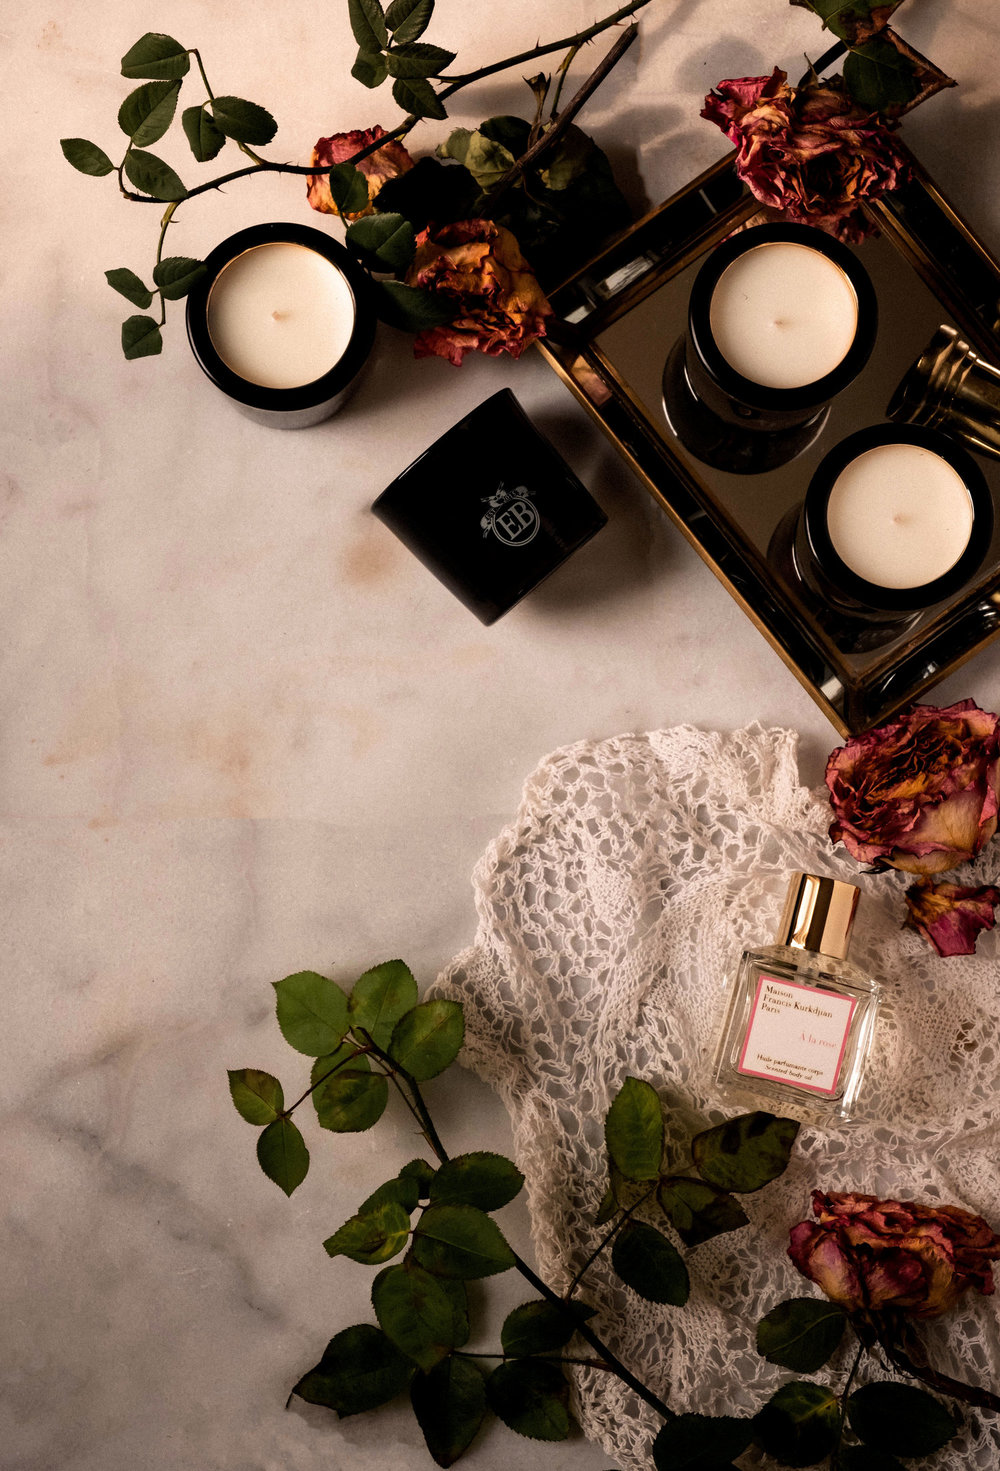 ROSE+&+IVY+Journal+Holiday+Gifting+A+Guide+of+Flowers+&+Botanicals+Maison+Kurkijan+A+la+Rose+Oil+and+Eric+Butterbaugh+Candles.jpeg